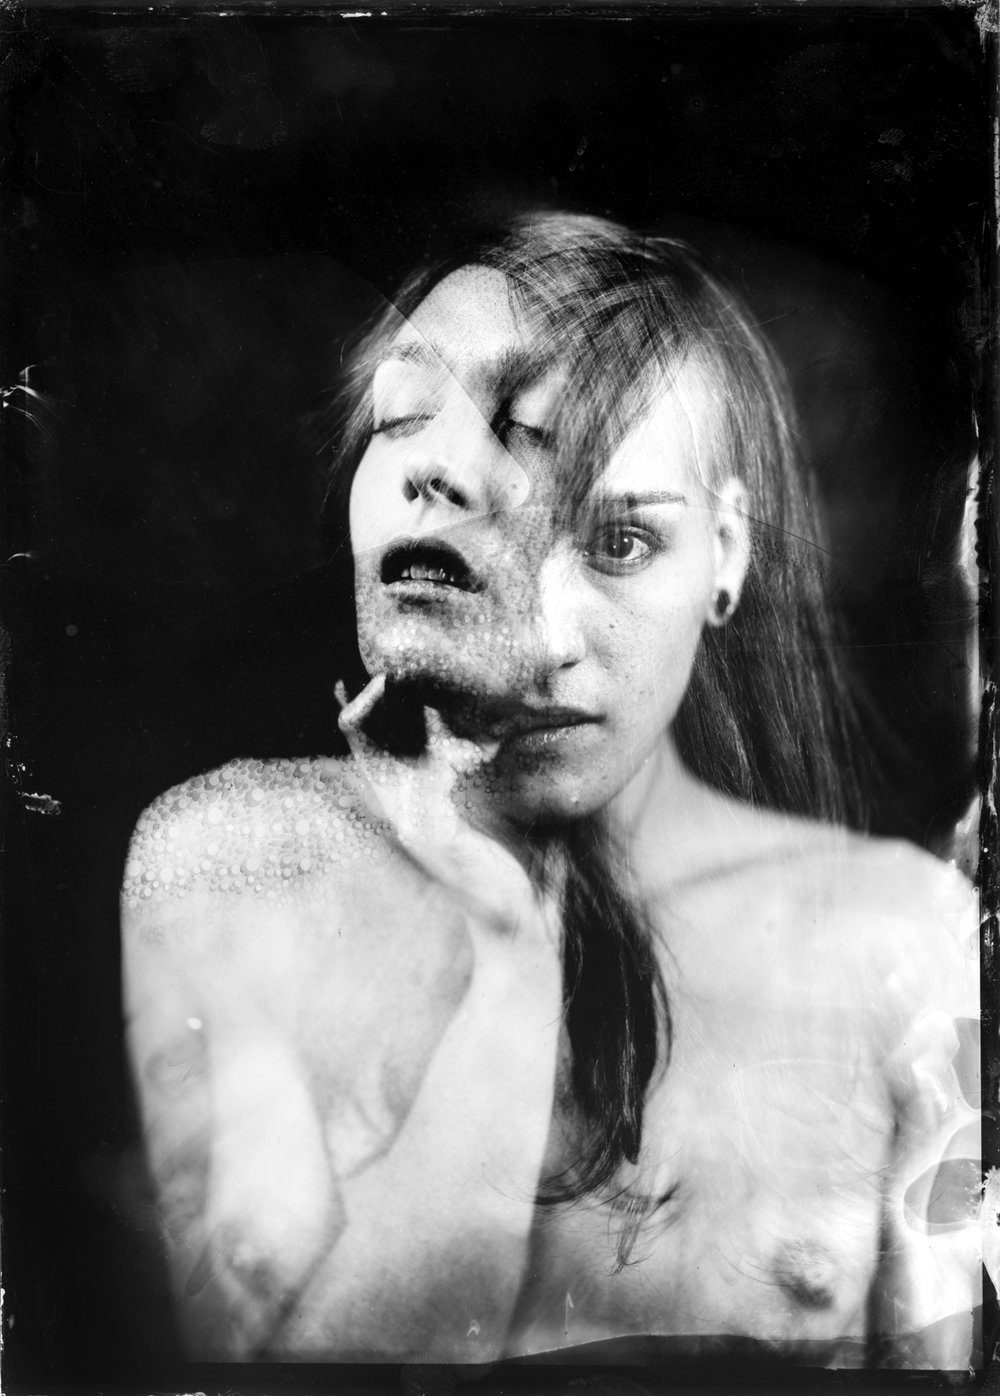 - Marion #1Original Ferrotype   13x18cmin original early XX century photographic frame1300 € Print availableContact us for available sizes and quotation